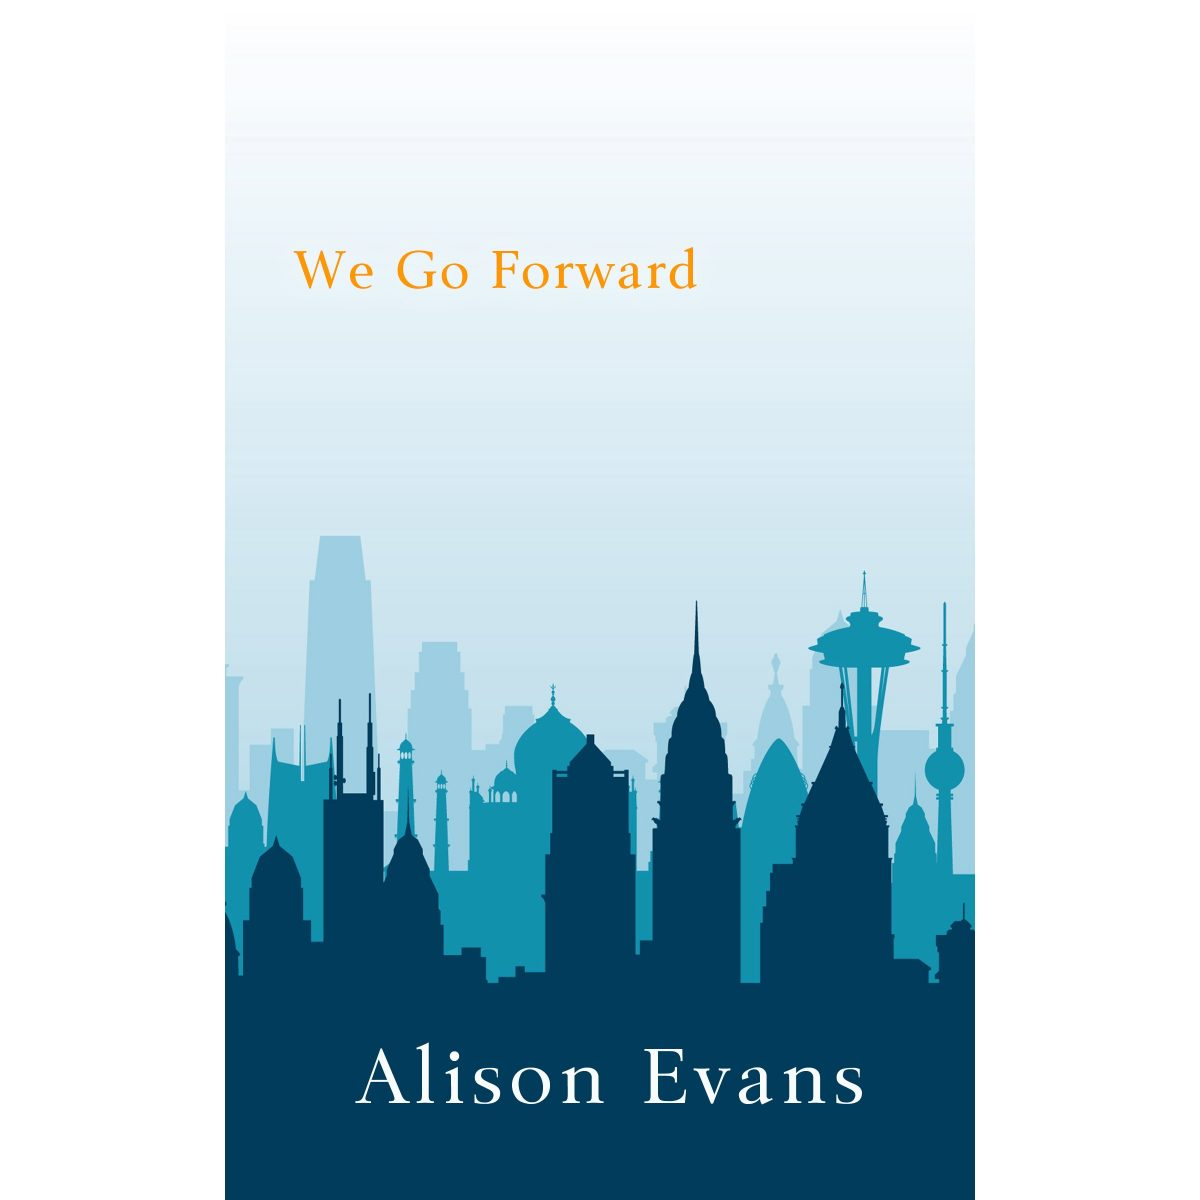 Cover is of the Seattle skyline shadow in various shades of blue.